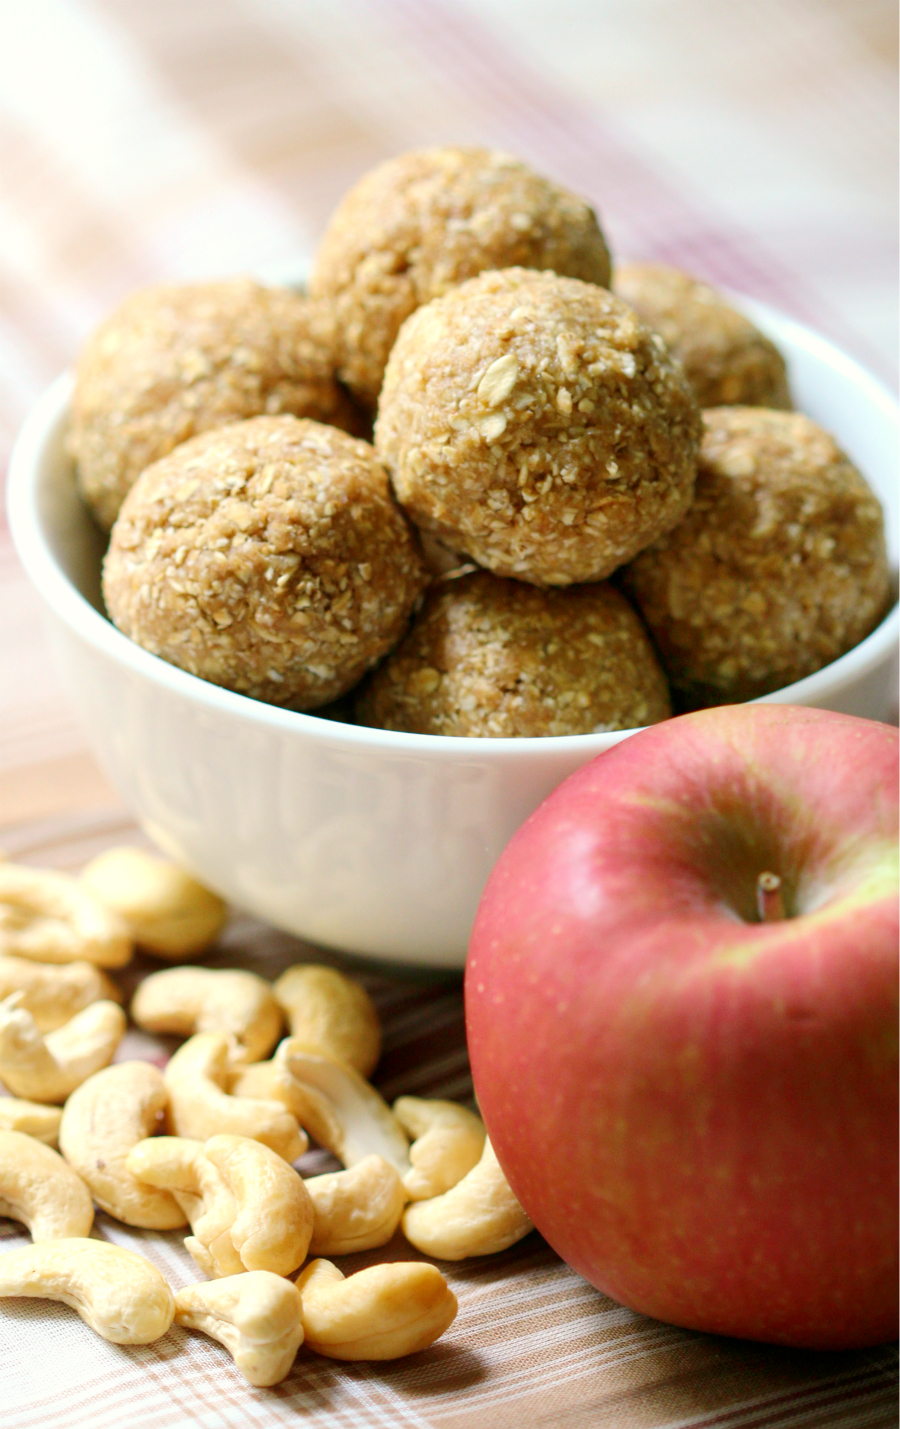 Apple Cashew Snack Bites | Strength and Sunshine @RebeccaGF666 A sweet little no-bake snack bite that's great for school, work, and on the go! These Apple Cashew Snack Bites are gluten-free, vegan, made right in a food processor, and freezer-friendly! A make-ahead recipe to always keep on hand!